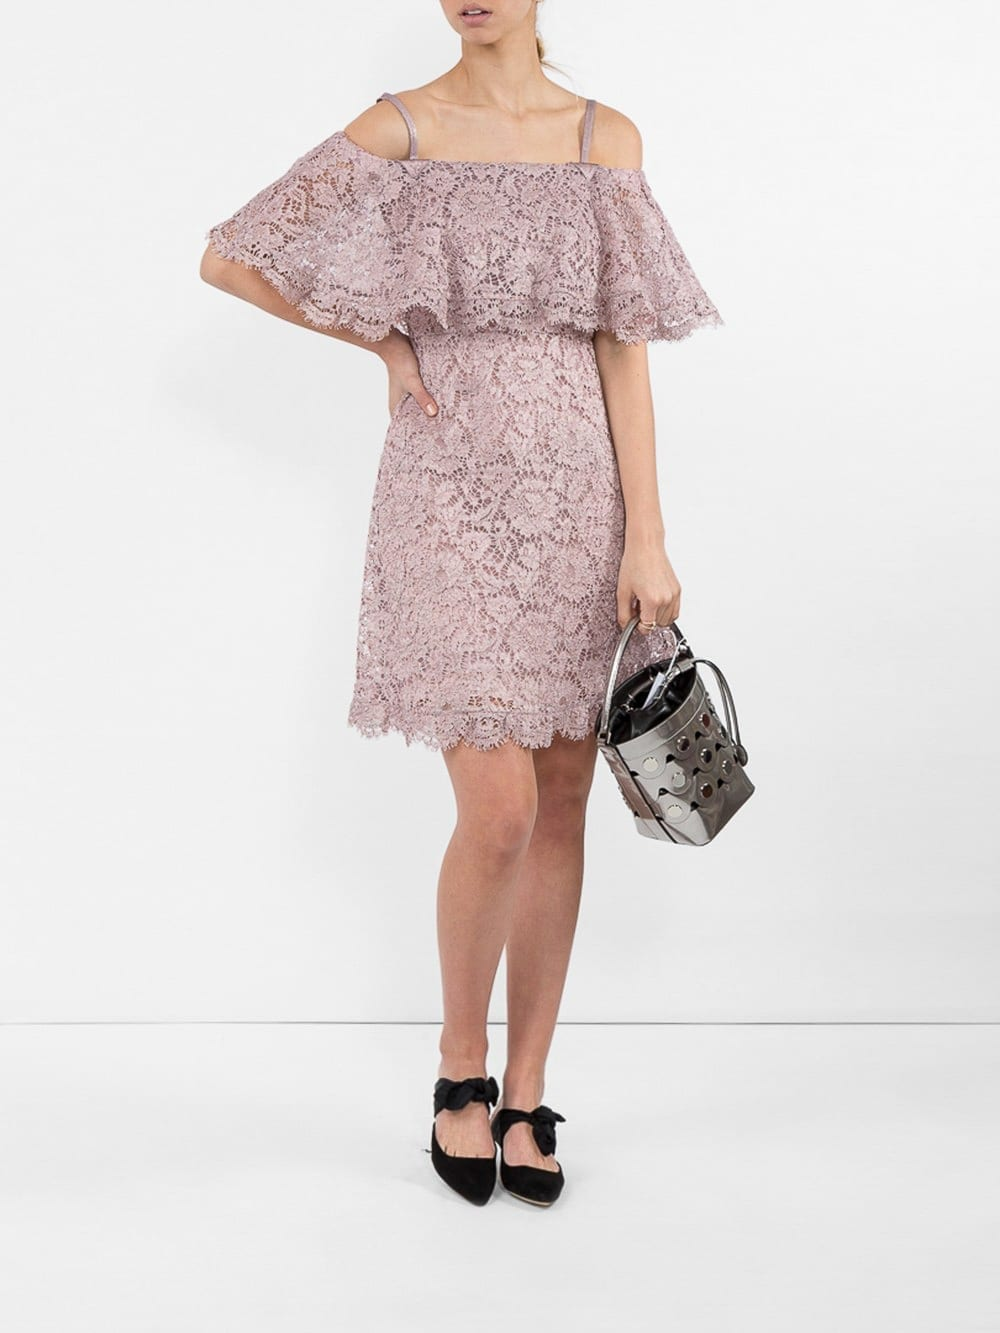 VALENTINO Cotton-Blend Lace Mini Dress